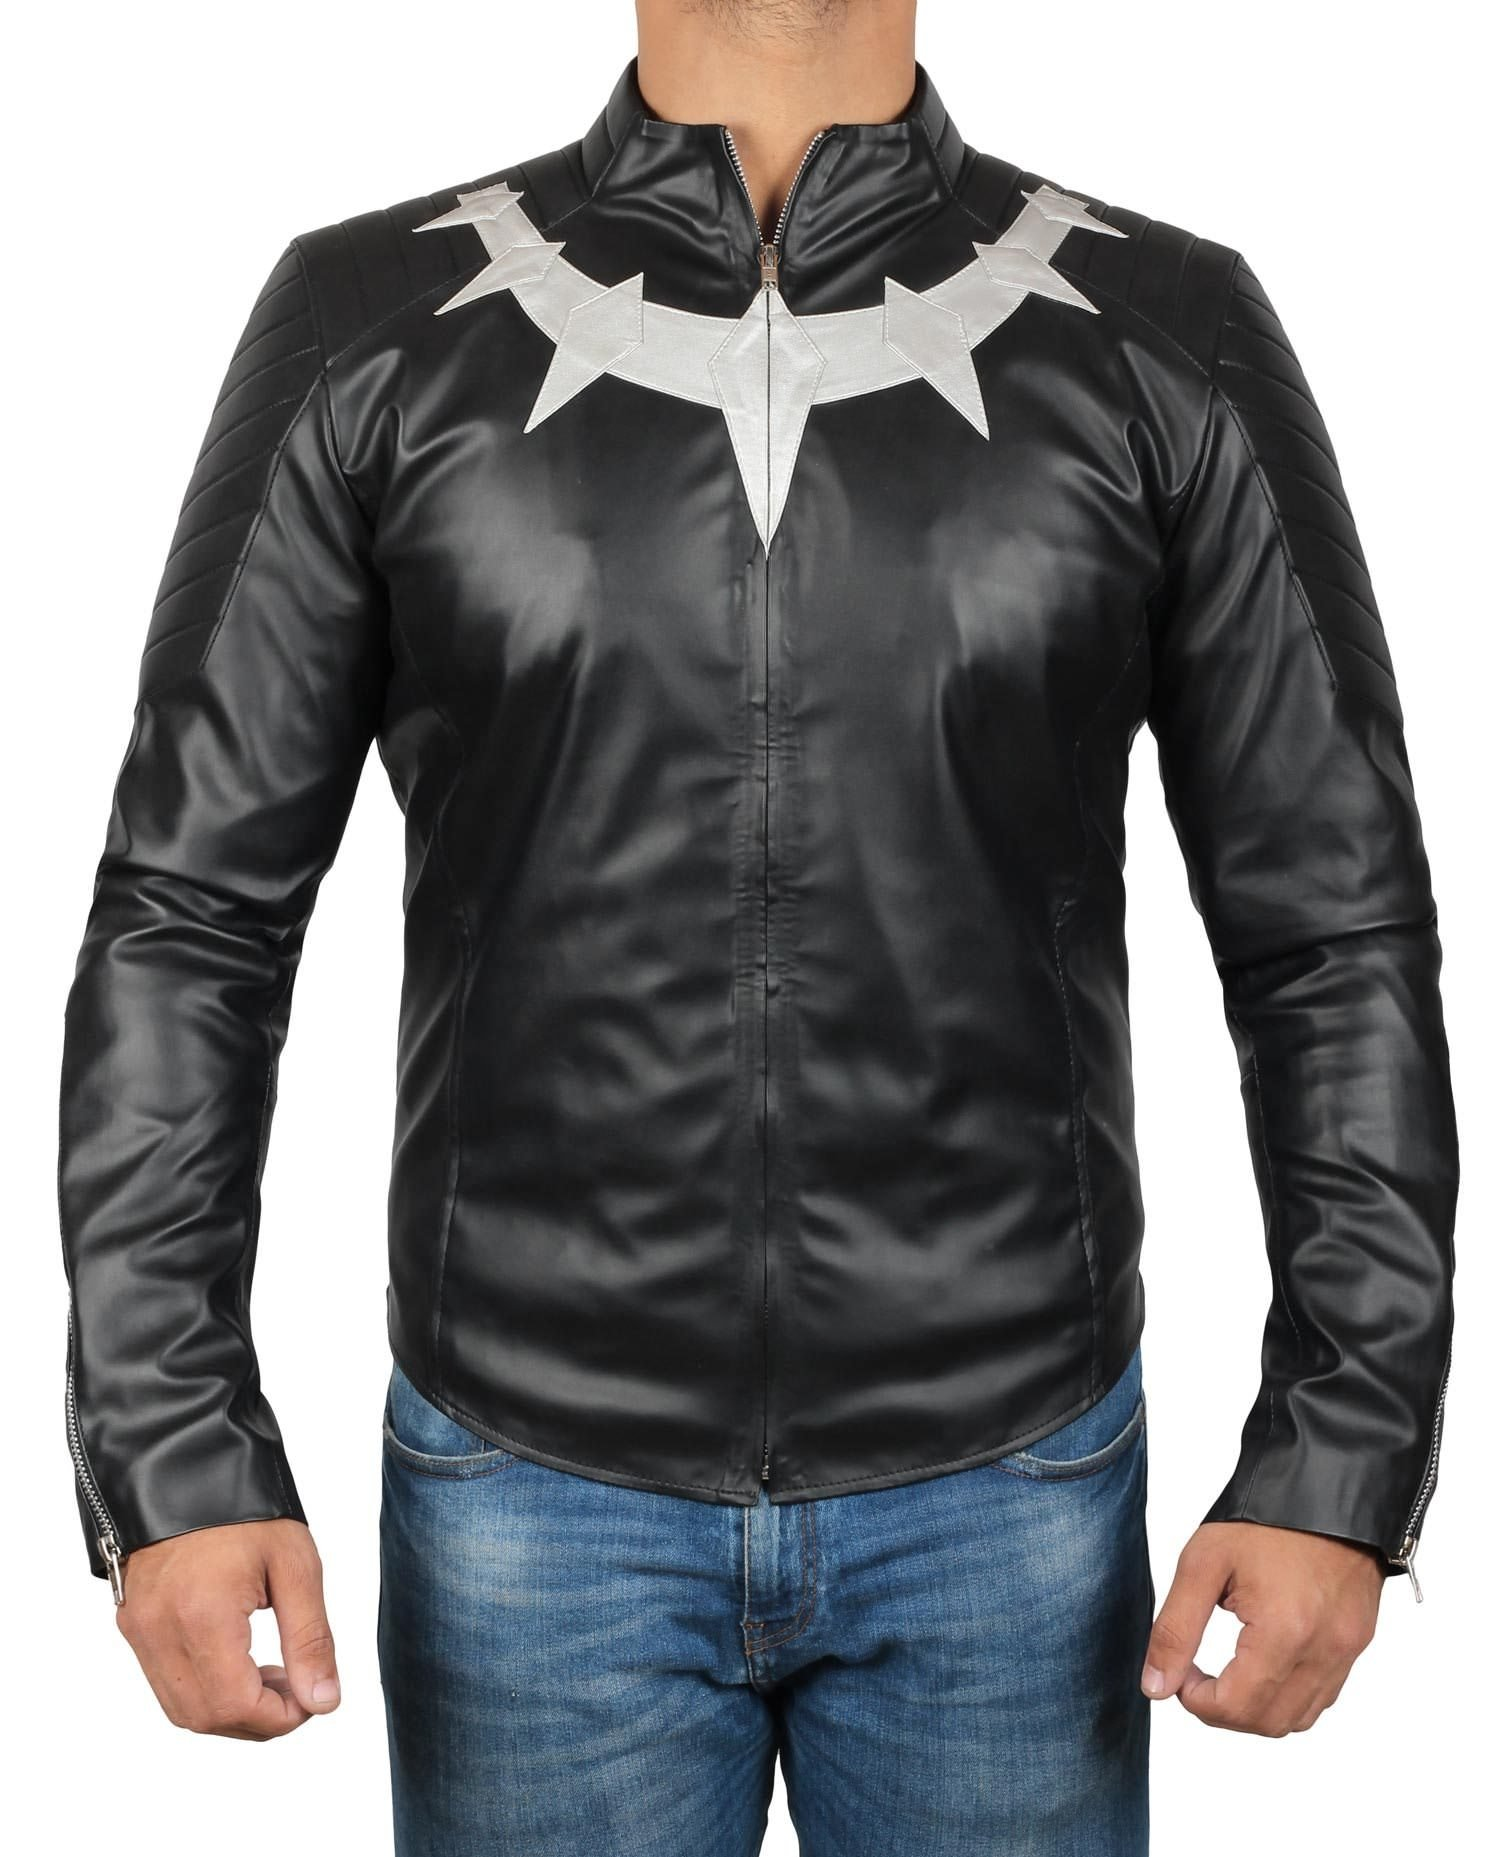 Mens Black Panther Jacket - Avengers Infinity War Leather Jacket | Panther Basic, XXL by Decrum